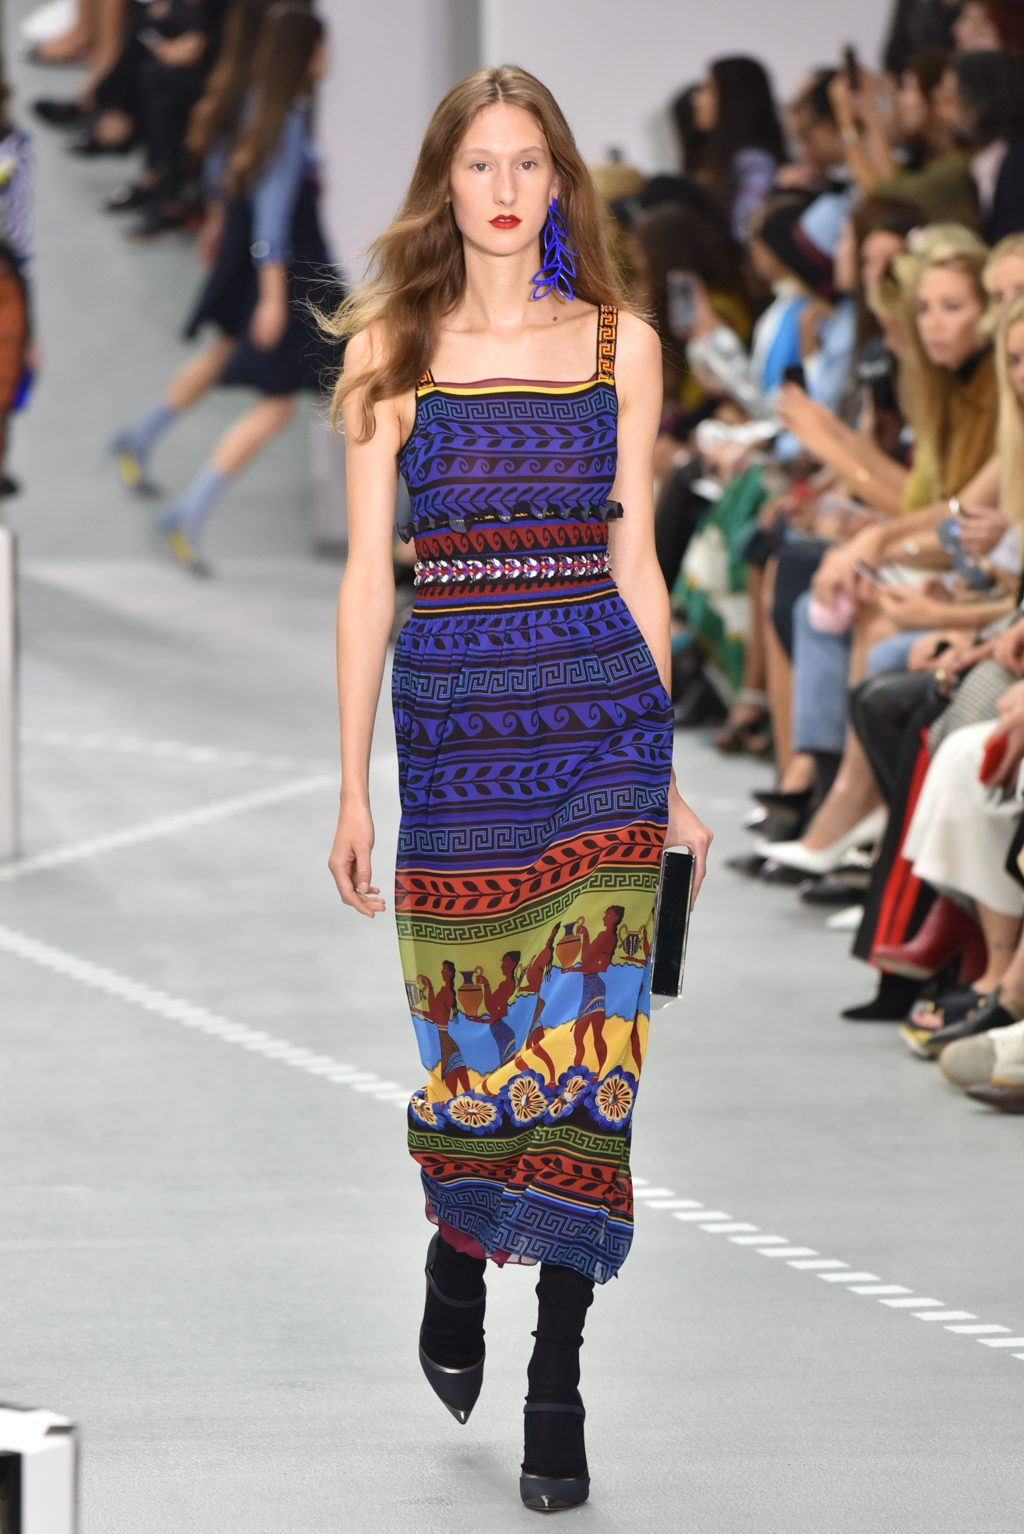 LFW-SS17-Mary-Katrantzou-Krisztian-Pinter-the-upcoming-10-1024x1534